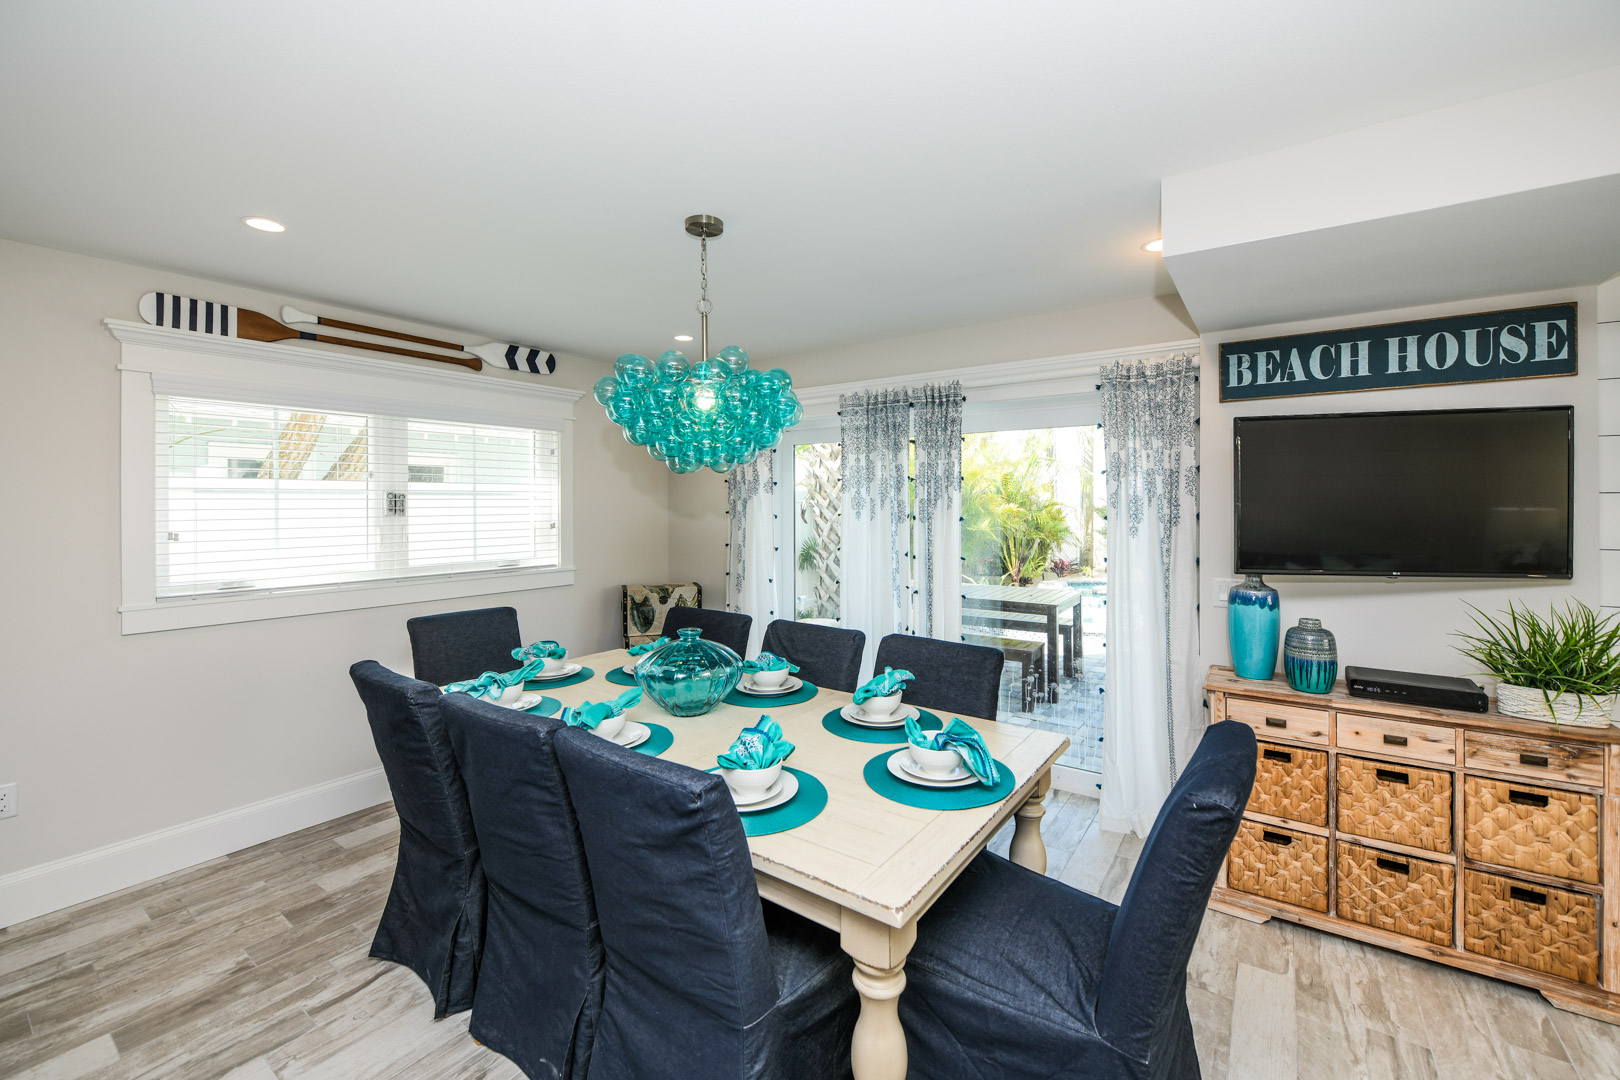 Beautiful dinning room table seating for 8